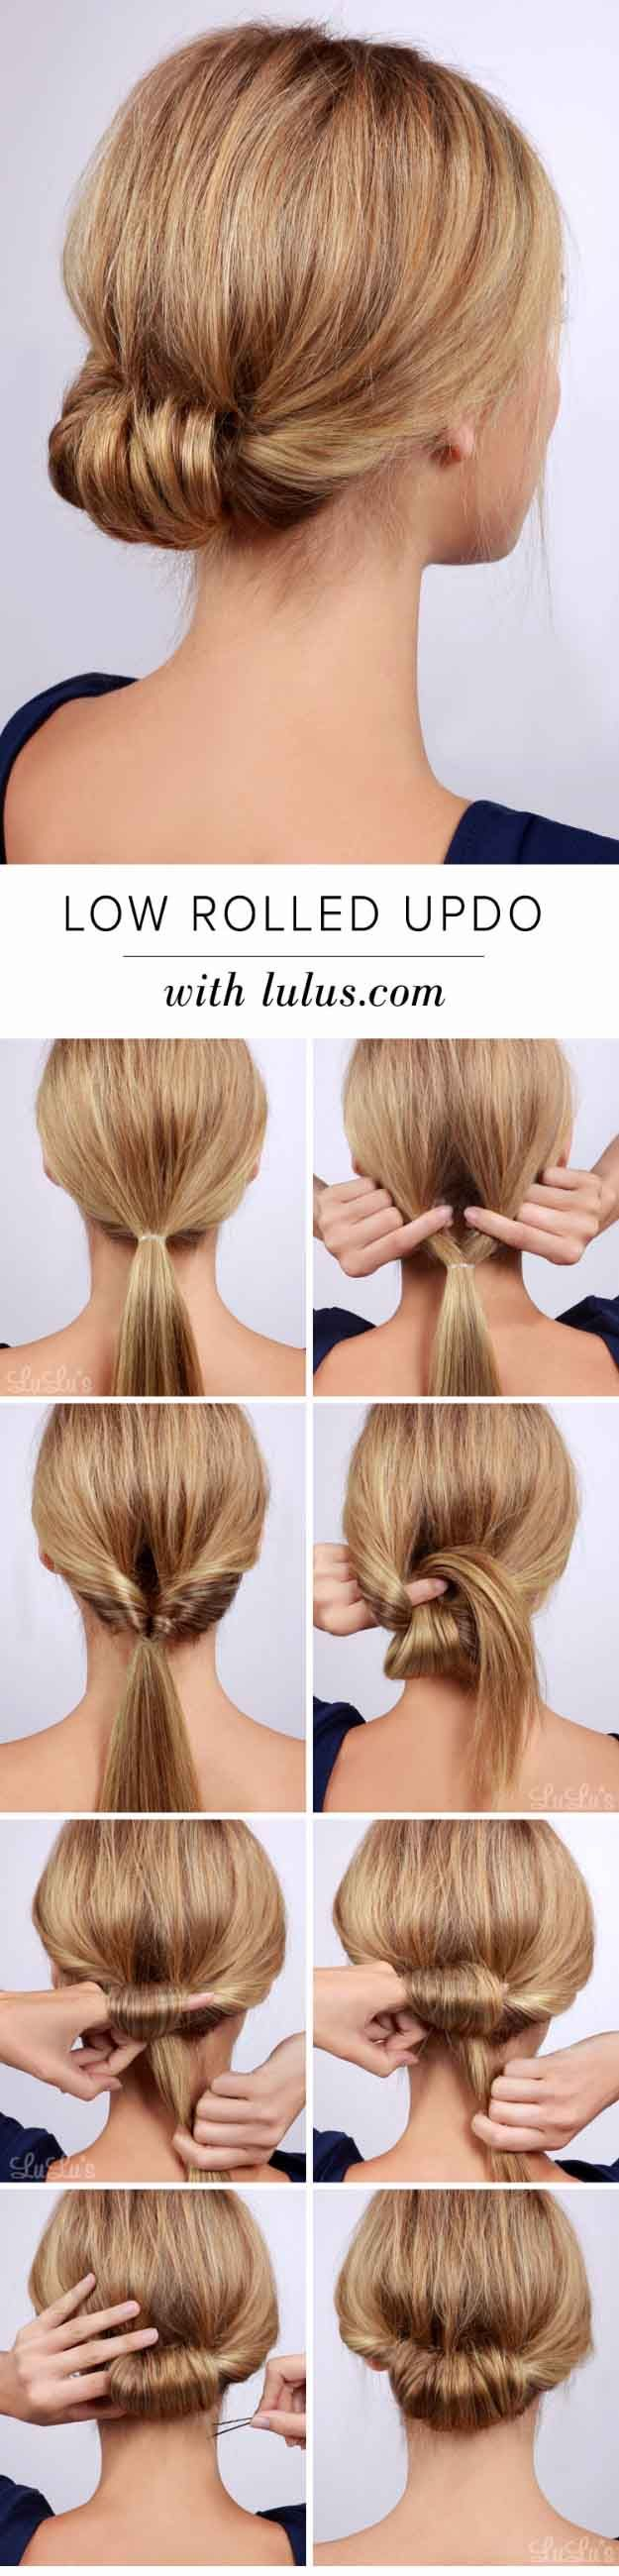 Best Hairstyles for Brides - Low Rolled Updo Hair Tutorial- Amazing Hair Styles and Looks for Half Up Medium Styles, Updo With Long Hair, Short Curls, Vintage Looks with Veil, Headpieces, or With Tiara - Wedding Looks for Girls With Round Faces - Awesome Simple Bridal Style With Headband or Elegant Braided Up Dos - thegoddess.com/hairstyles-for-brides